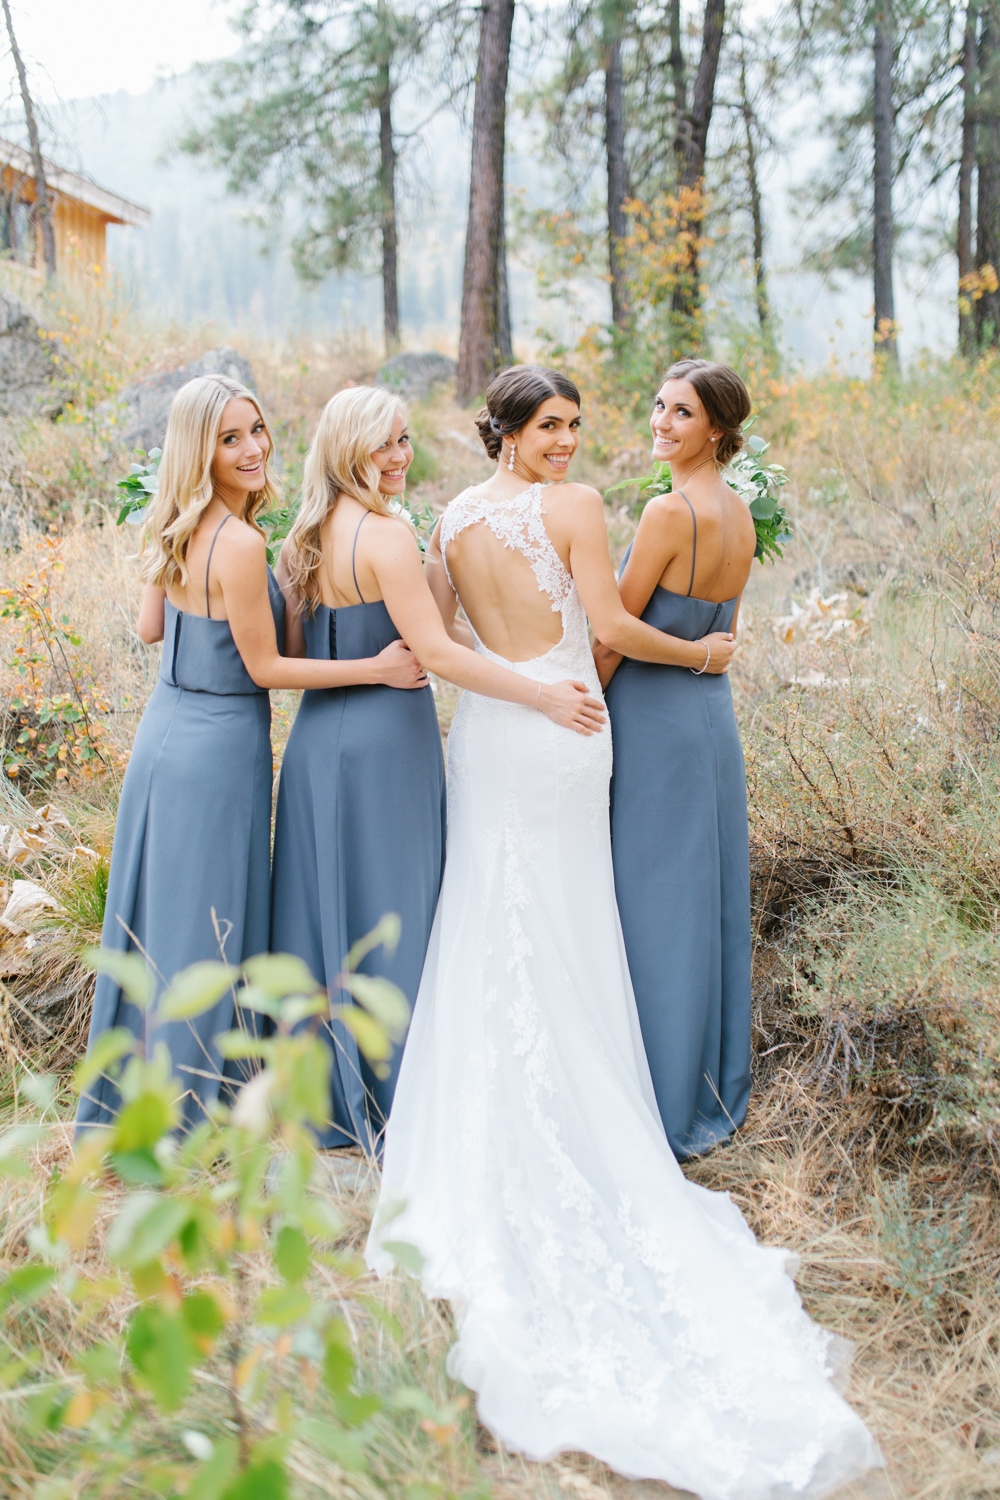 Grey and White Wedding in the Mountains of Leavenworth, Washington | Sleeping Lady | Classic and Timeless Wedding | VSCO | Bride with Bridesmaids | Grey Bridesmaids Dresses.jpg-2239.jpg